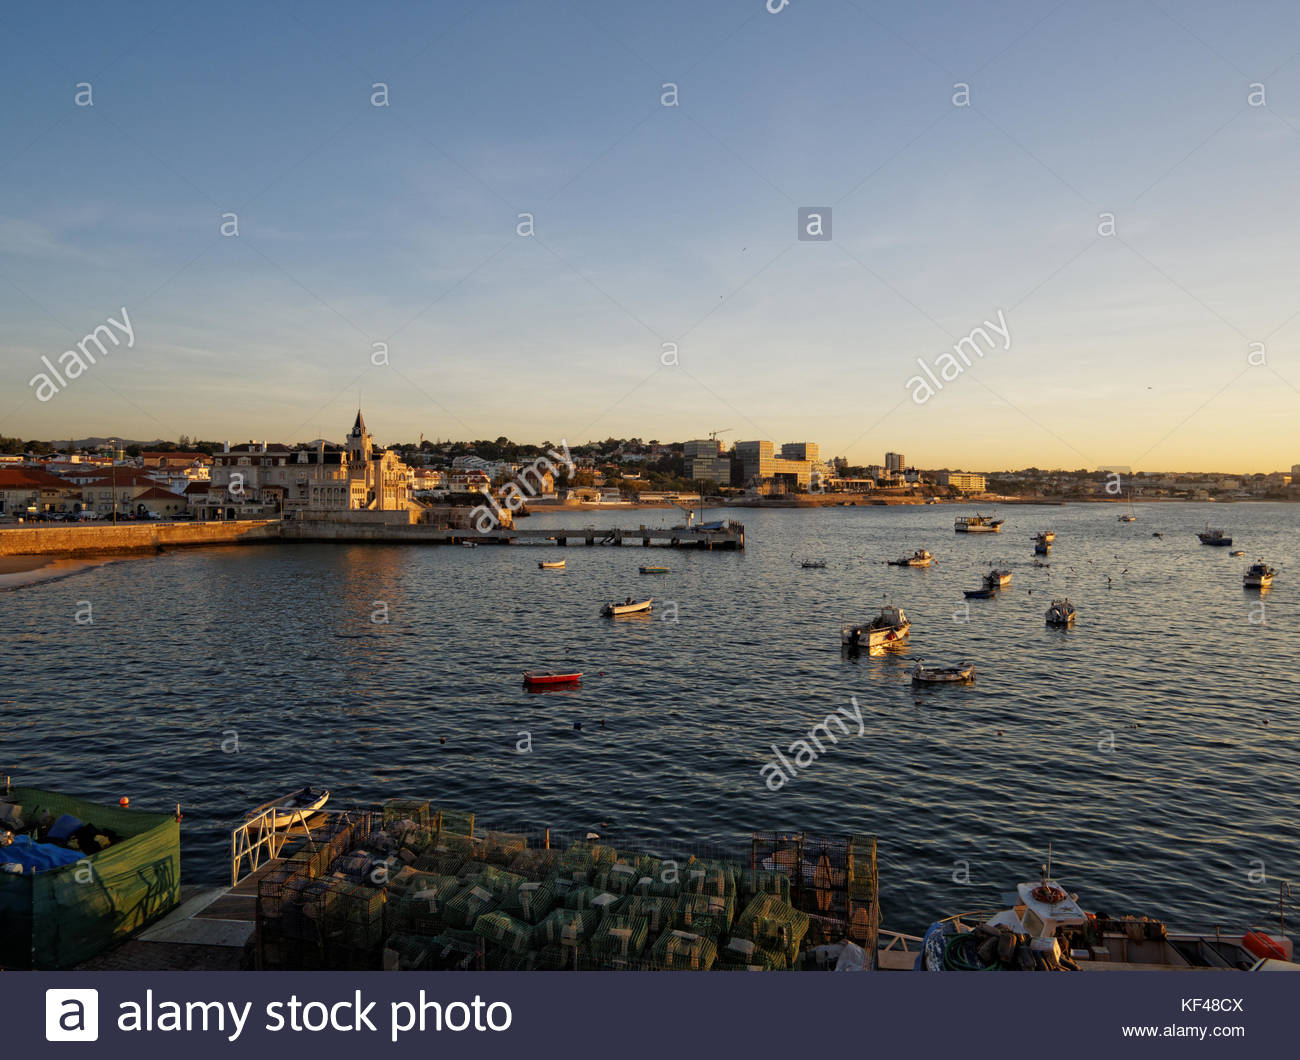 Fishing boats at anchor, lobster pots, Cascais Bay at sunrise, Portugal - Stock Image